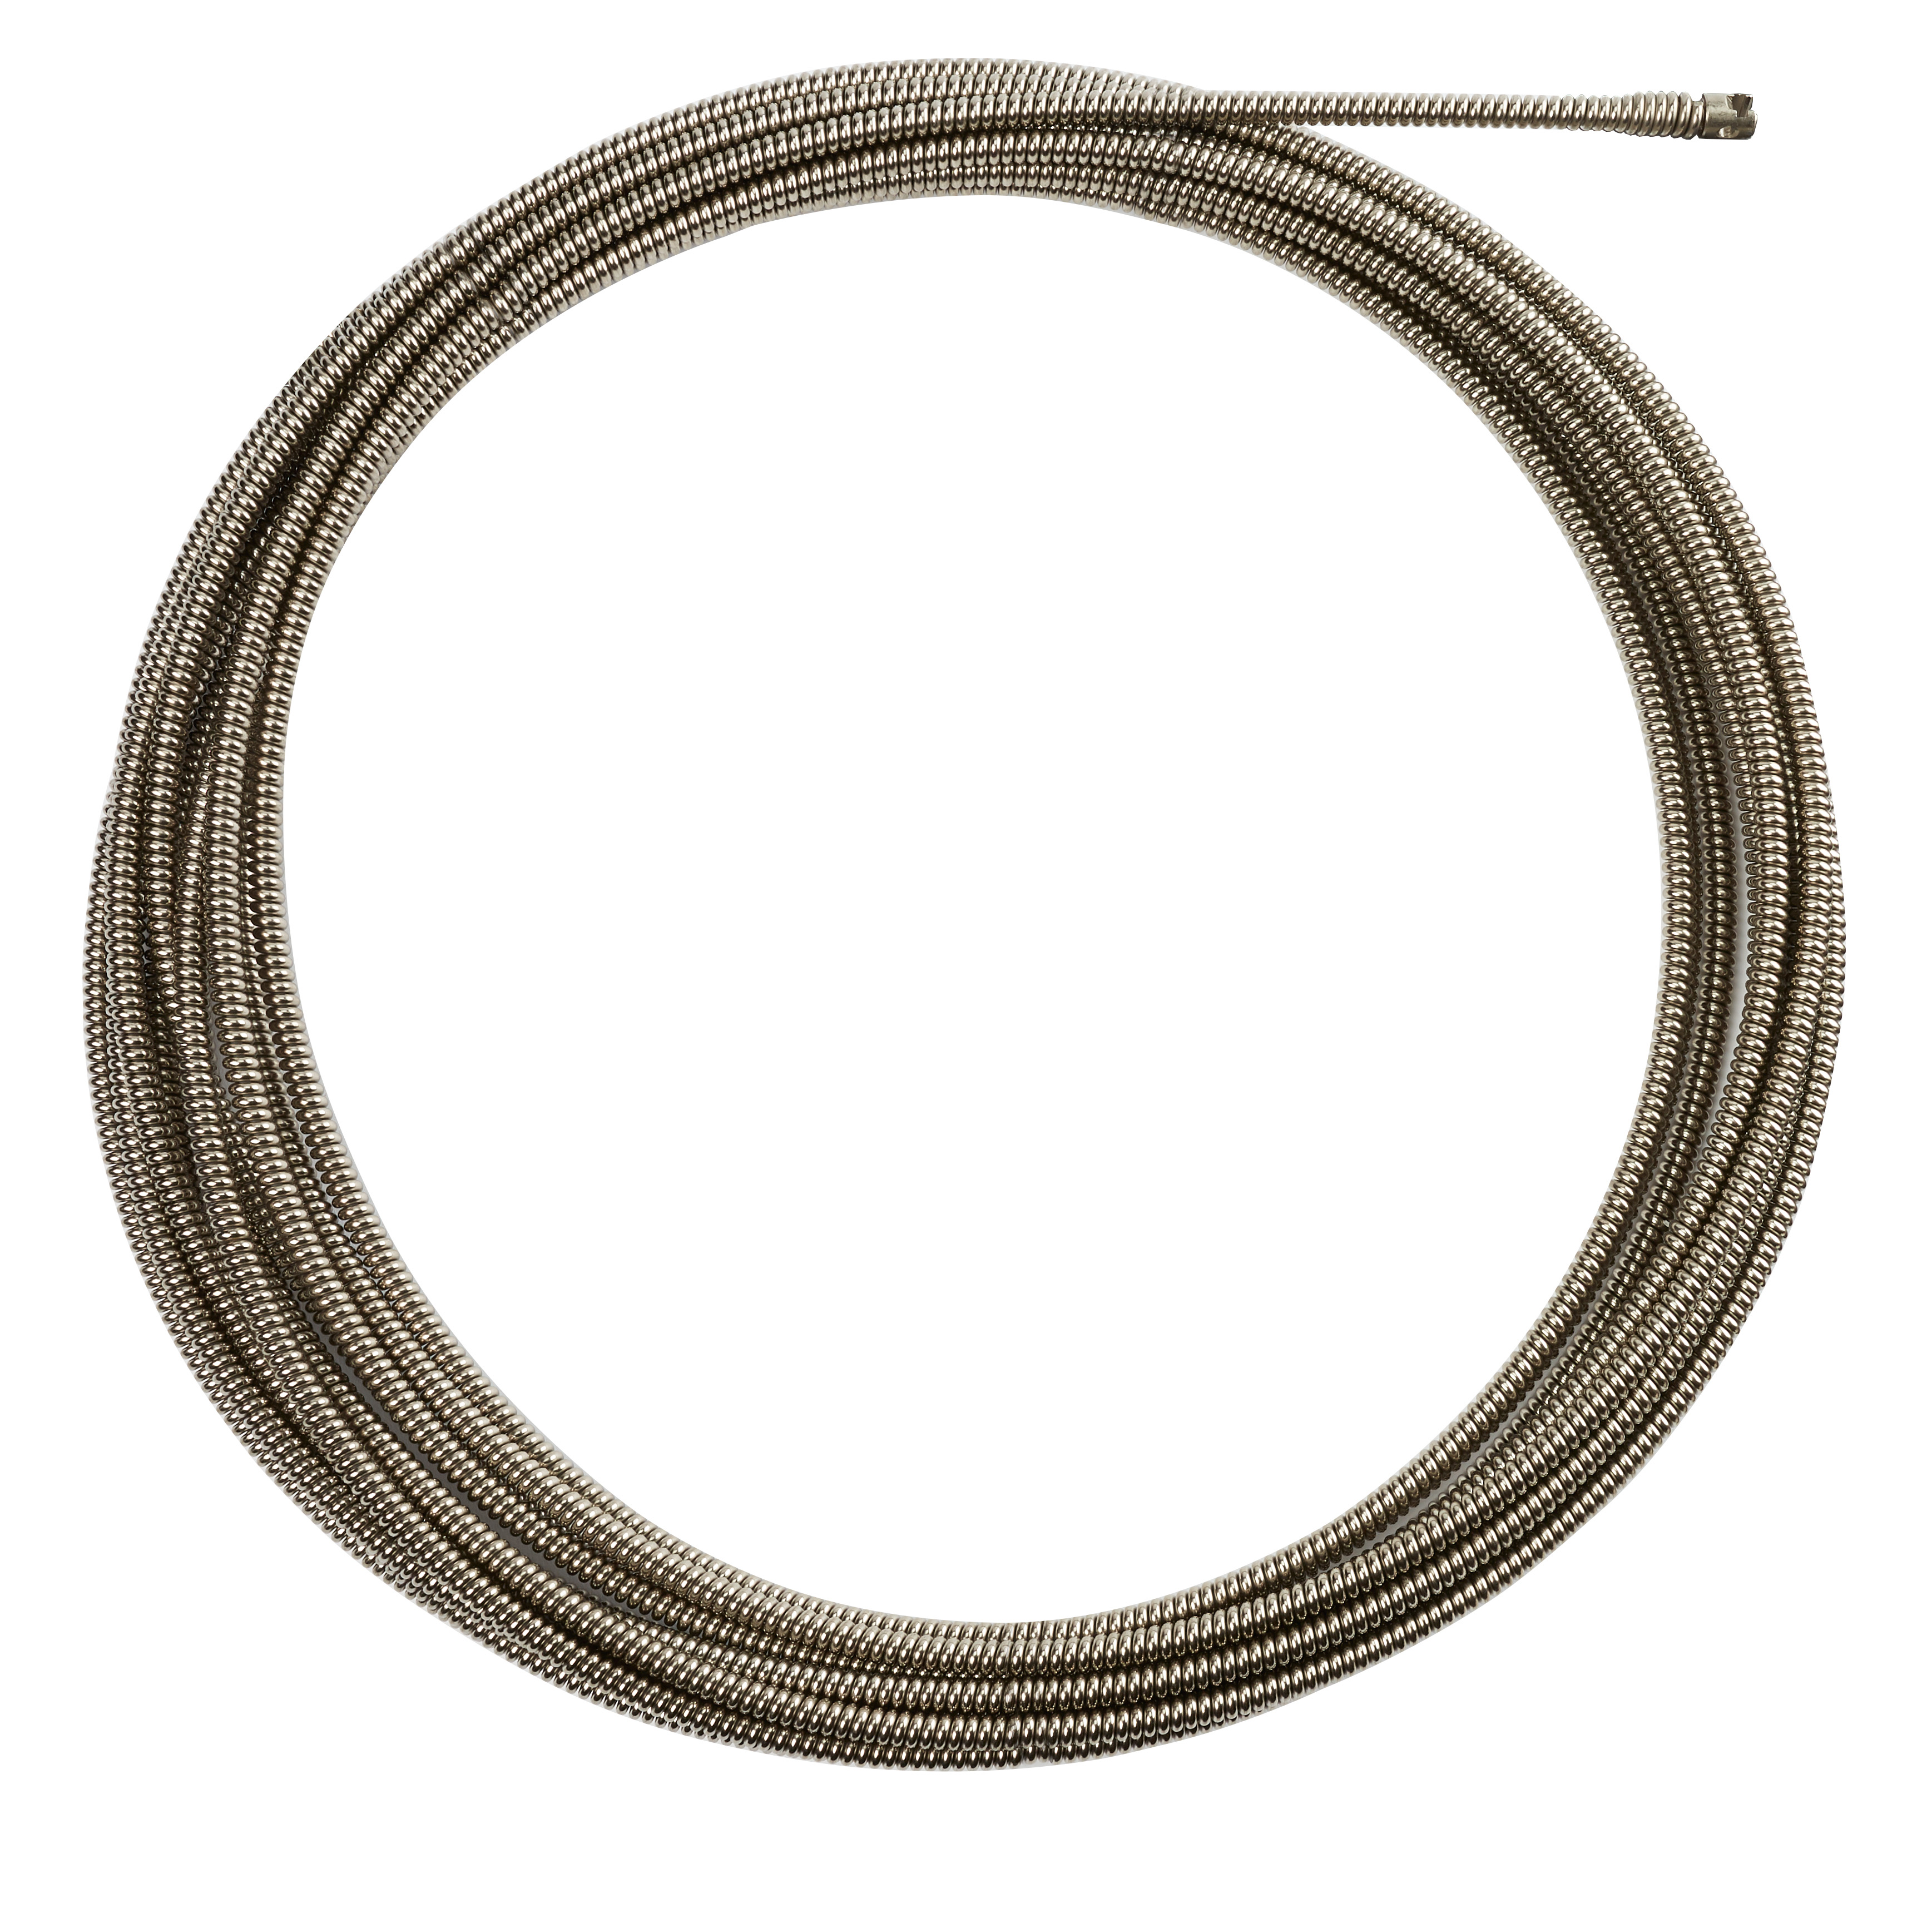 Milwaukee® 48-53-2773 Inner Core Coupling Drain Cleaning Cable, 3/8 in, Steel, For Use With Drain Cleaning Machines, 1-1/4 to 2-1/2 in Drain Line